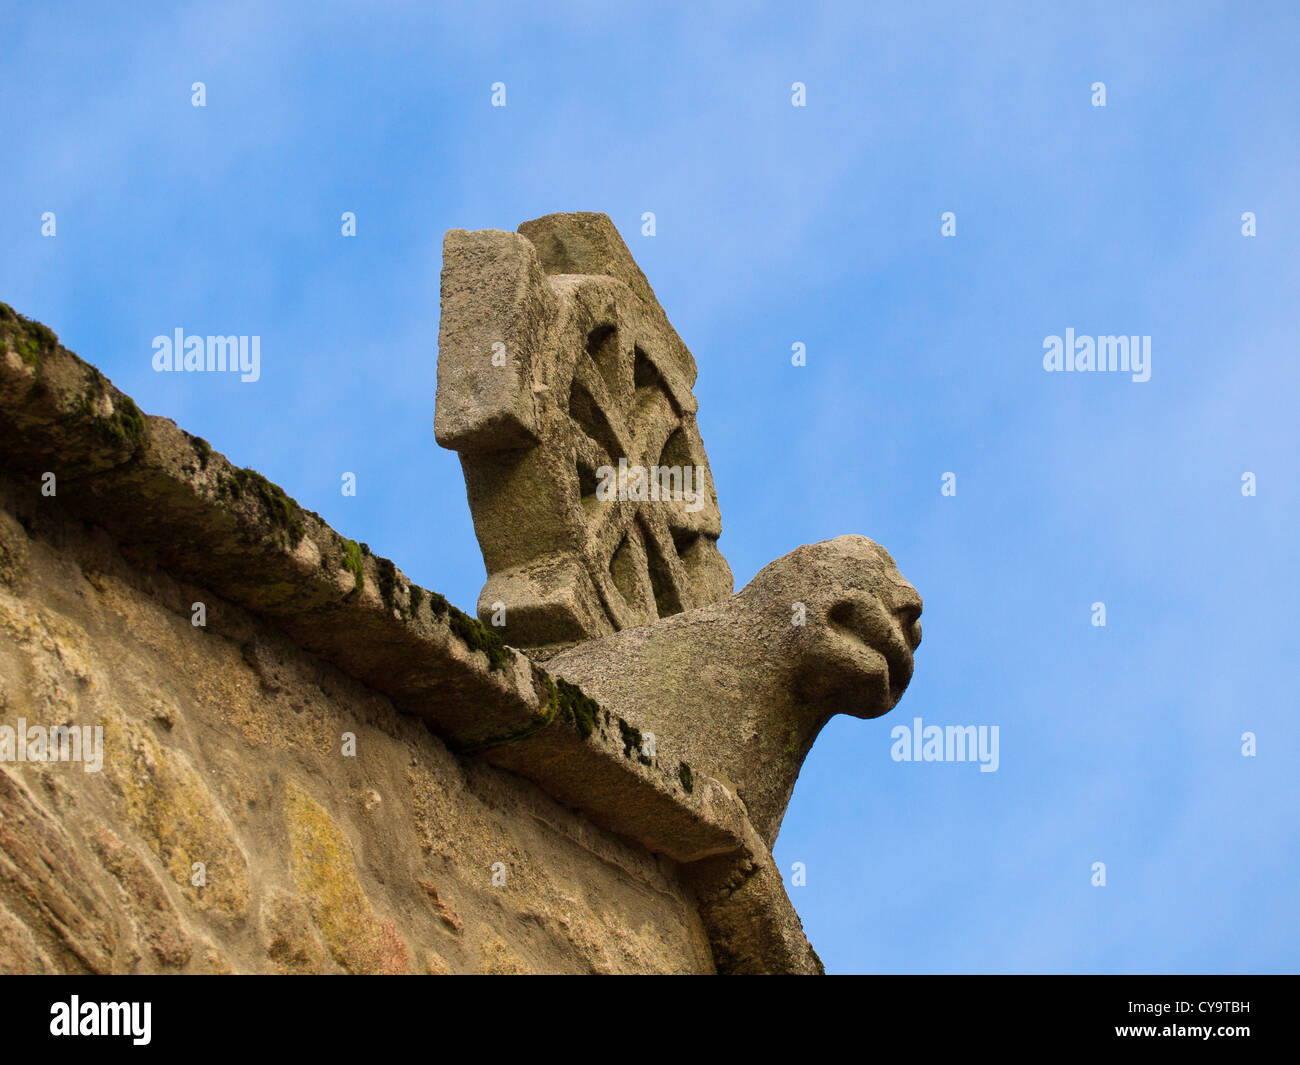 Ancient romanesque sculpture in the roof of Saint Mary of Figueiras church - Stock Image